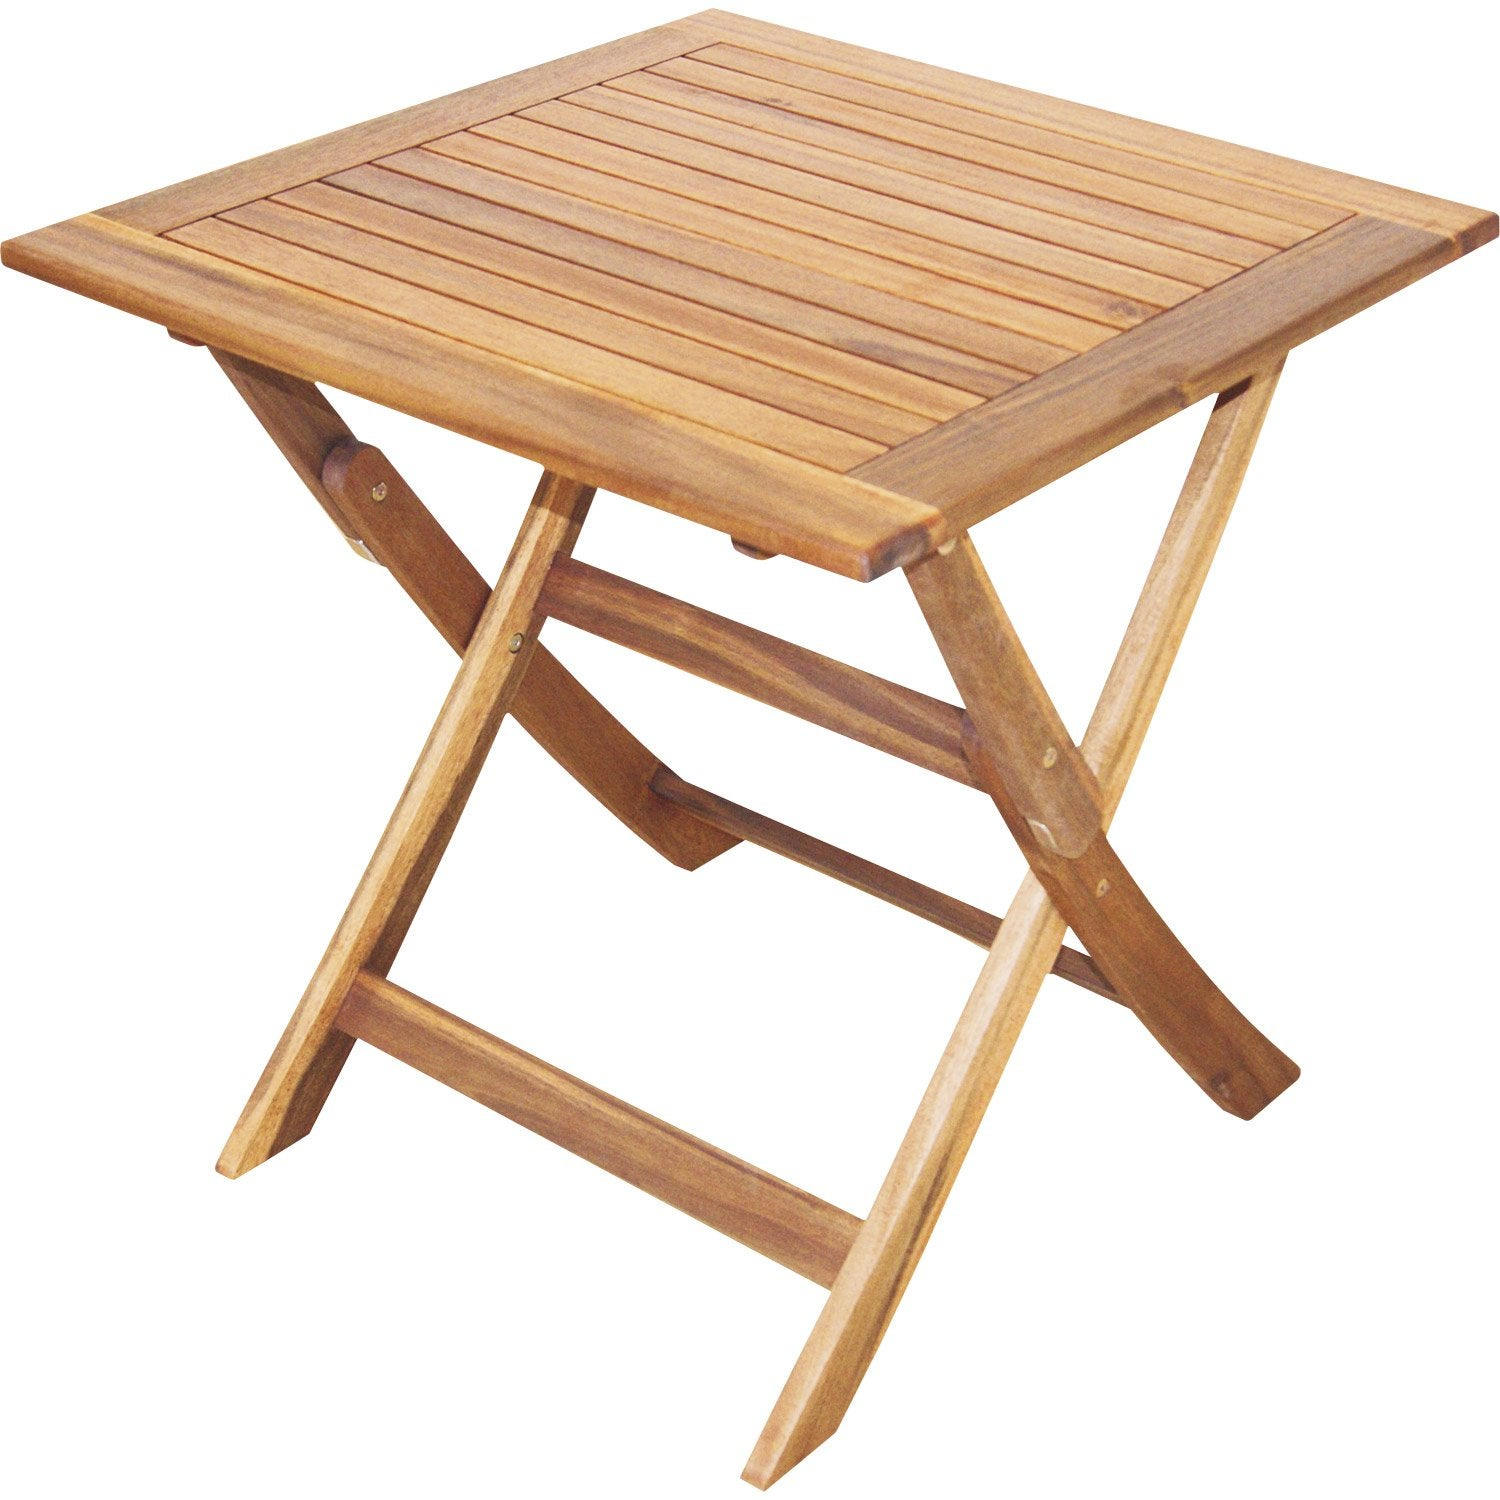 Table de jardin naterial porto carr e miel leroy merlin - Leroy merlin table pliante ...